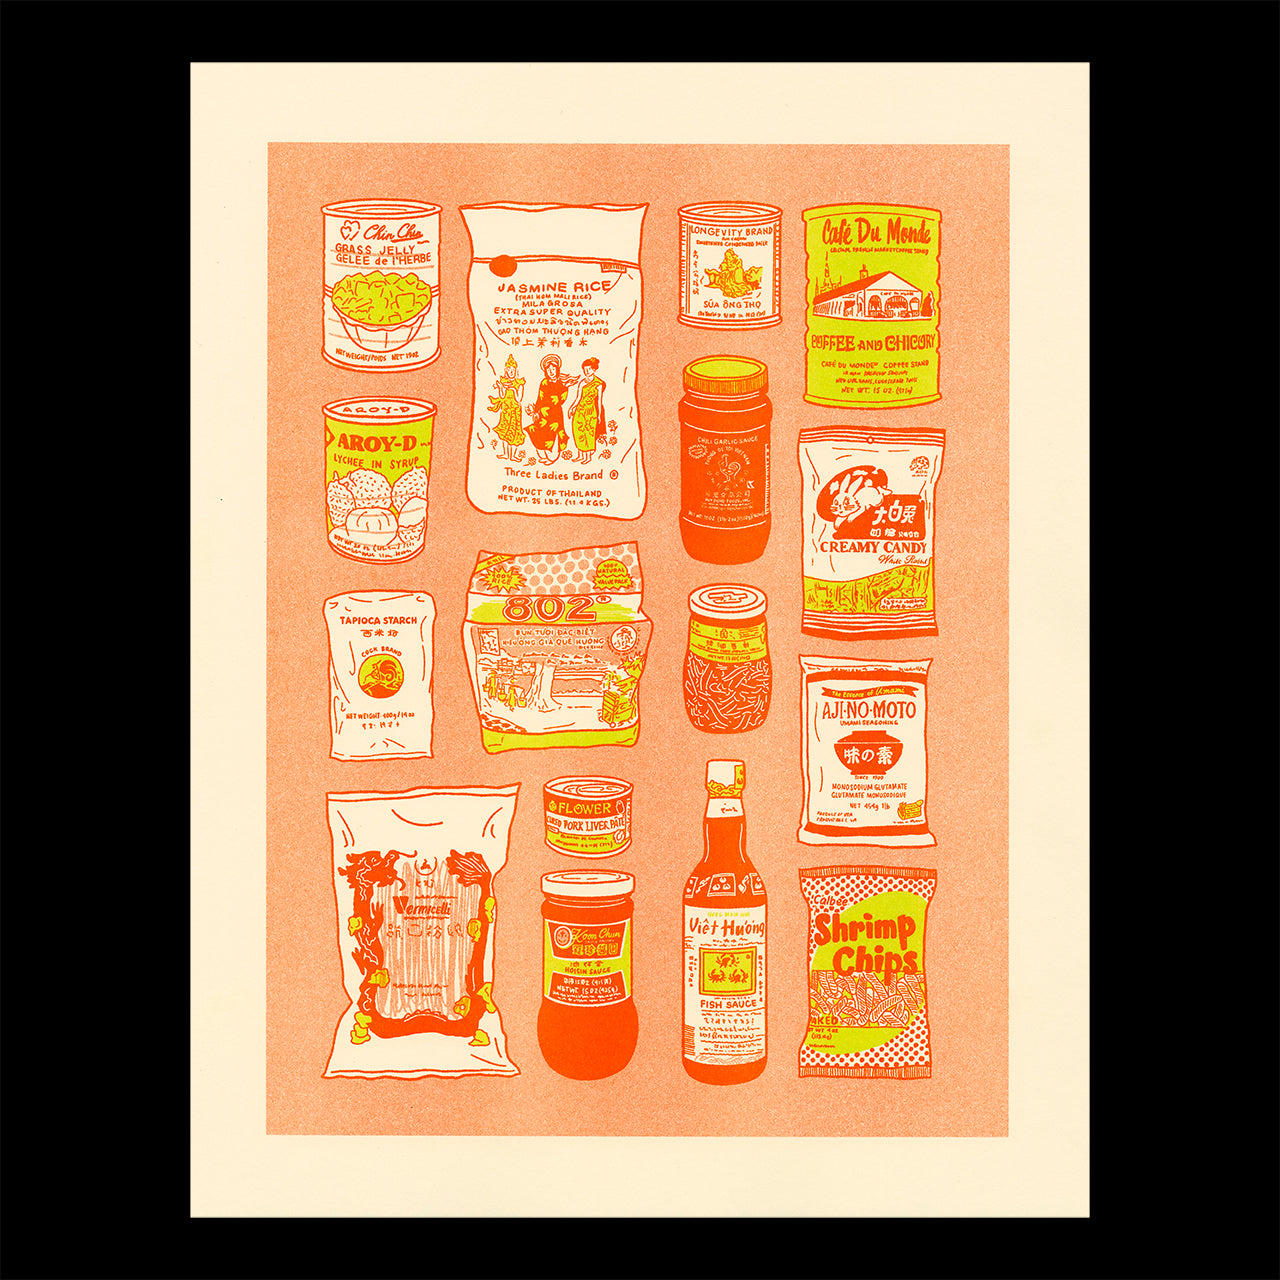 Risograph printed illustration showing common items found in the pantry of a Vietnamese home